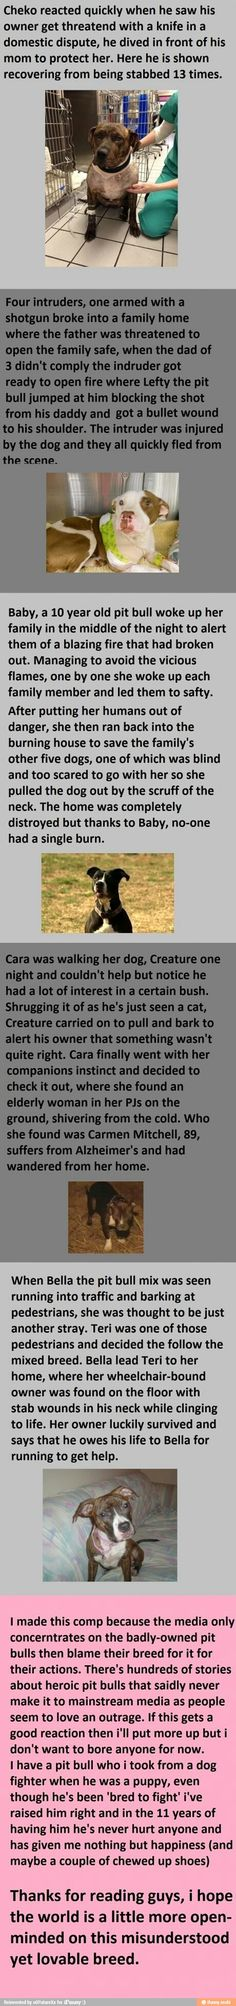 Lots of spelling errors in this, but super sweet nonetheless. Dogs are amazing.